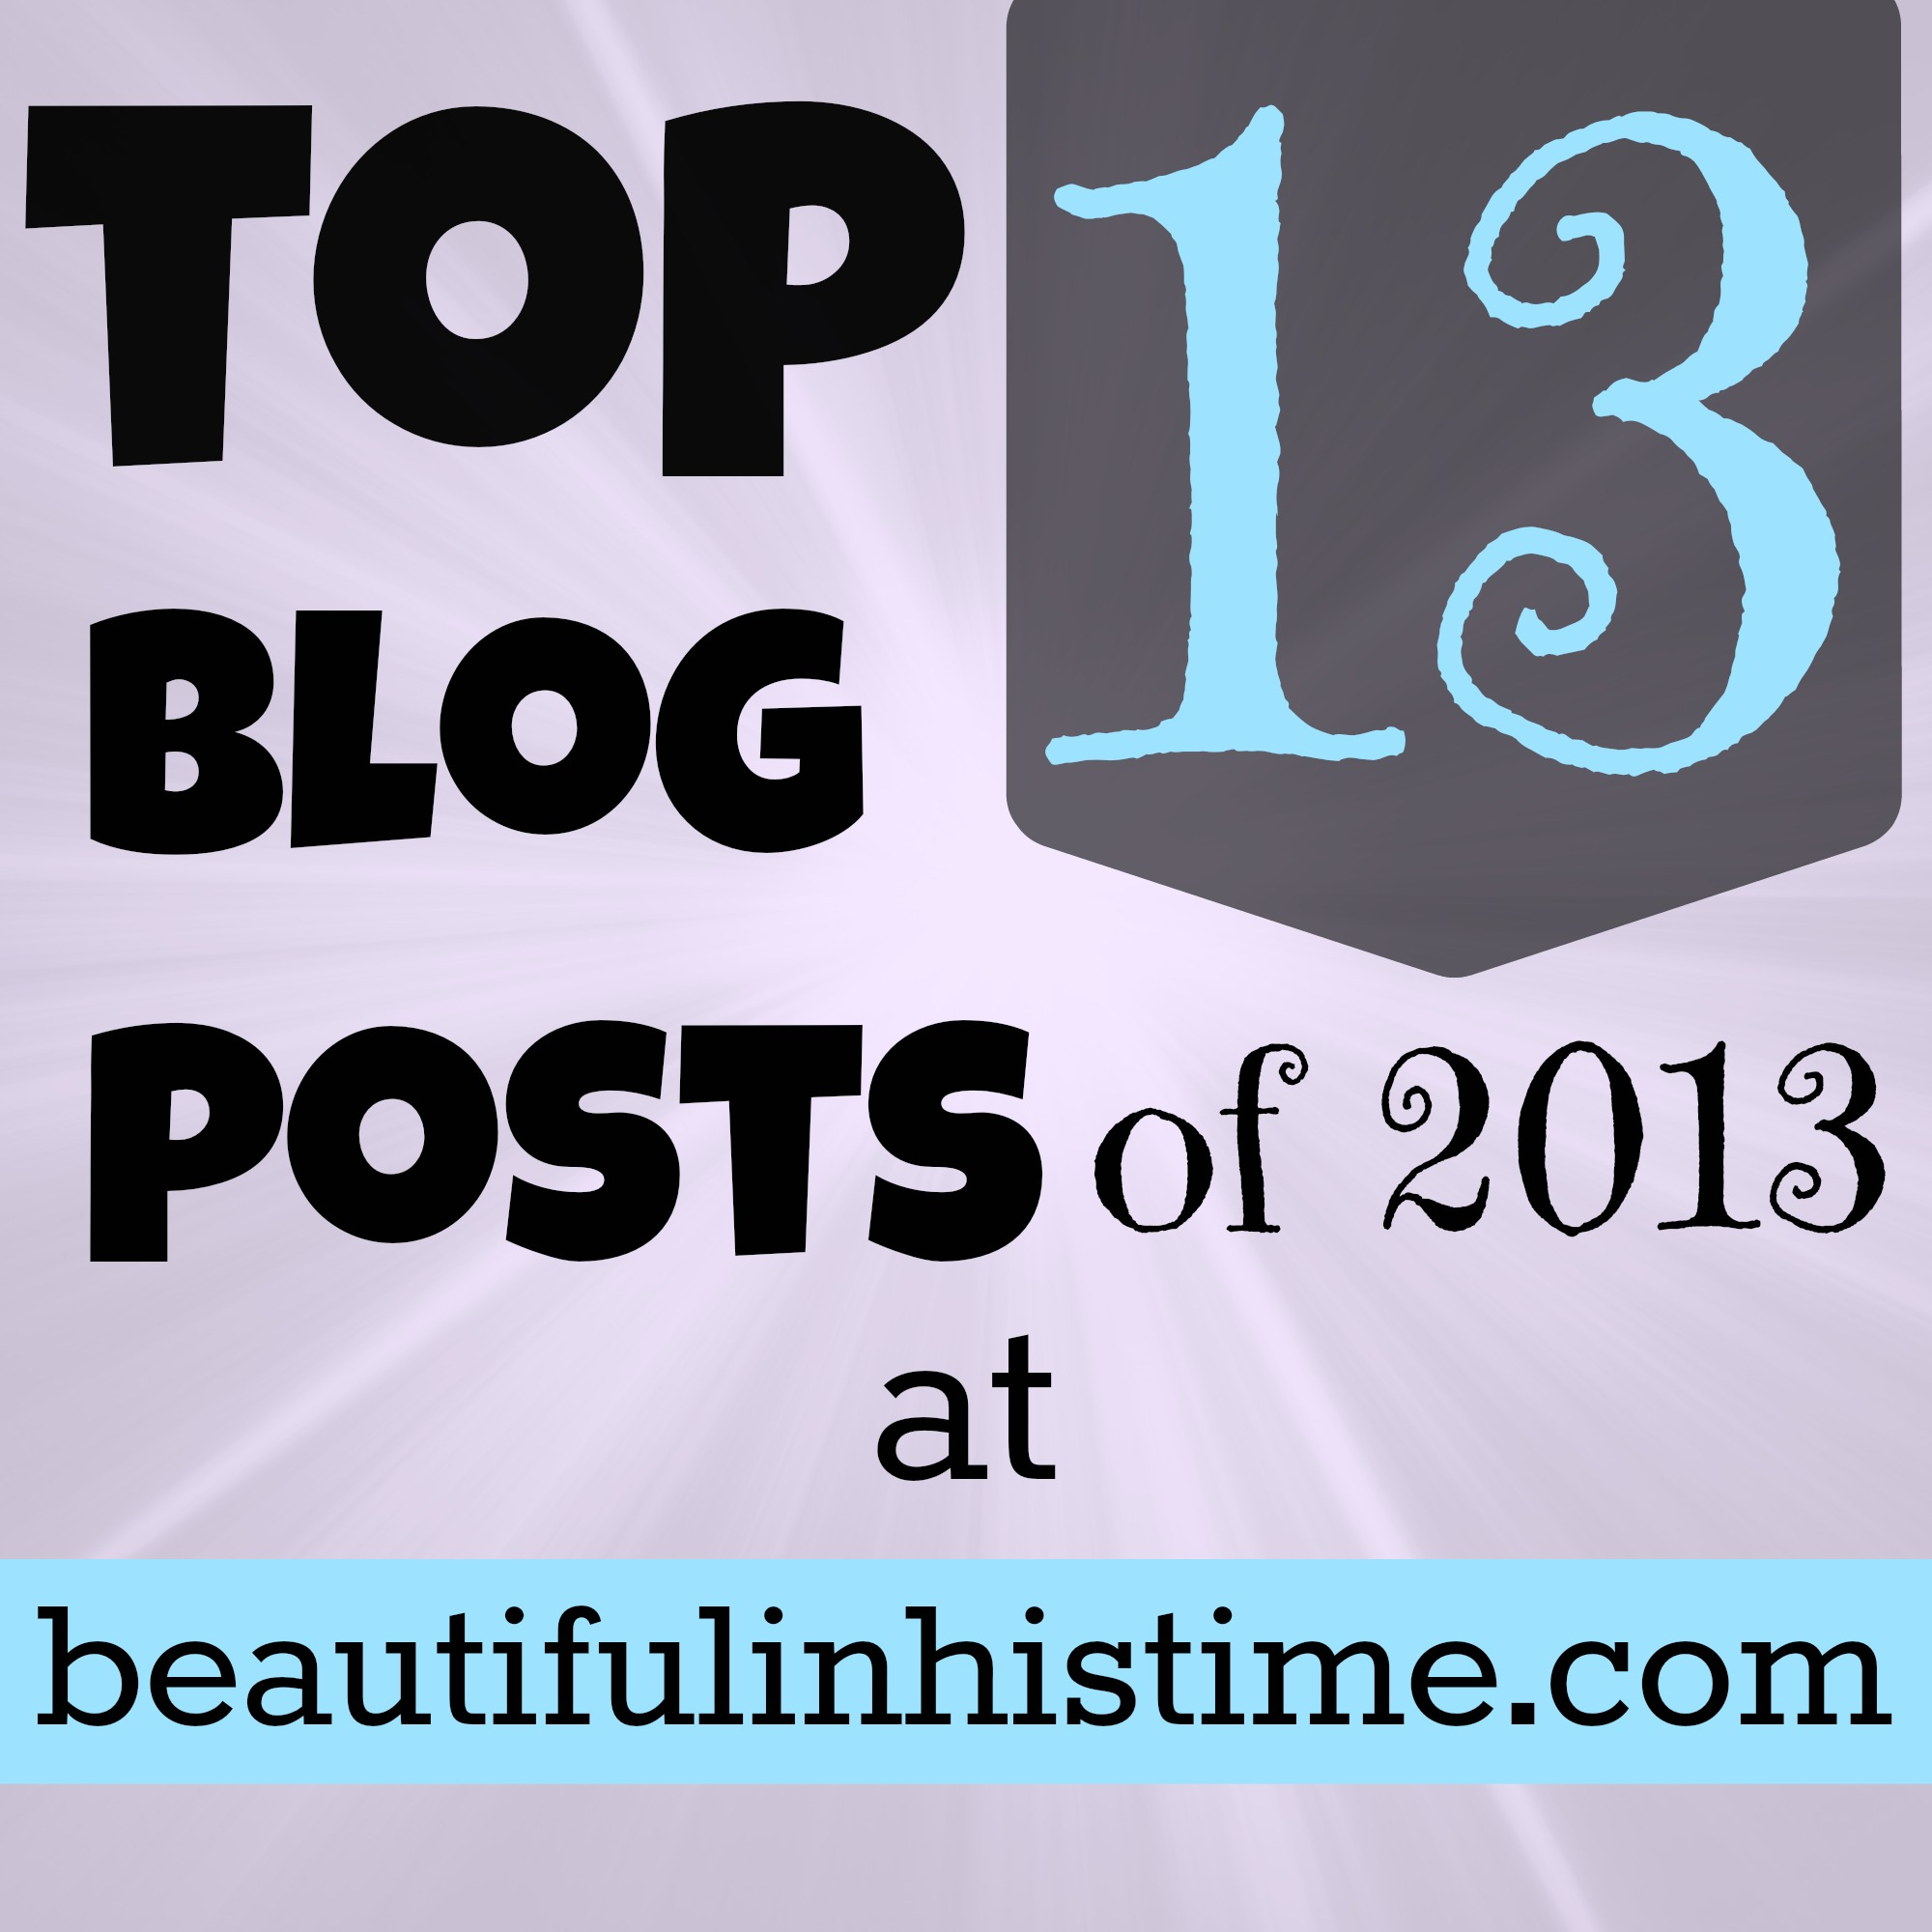 Top 13 posts of 2013 at beautifulinhistime.com